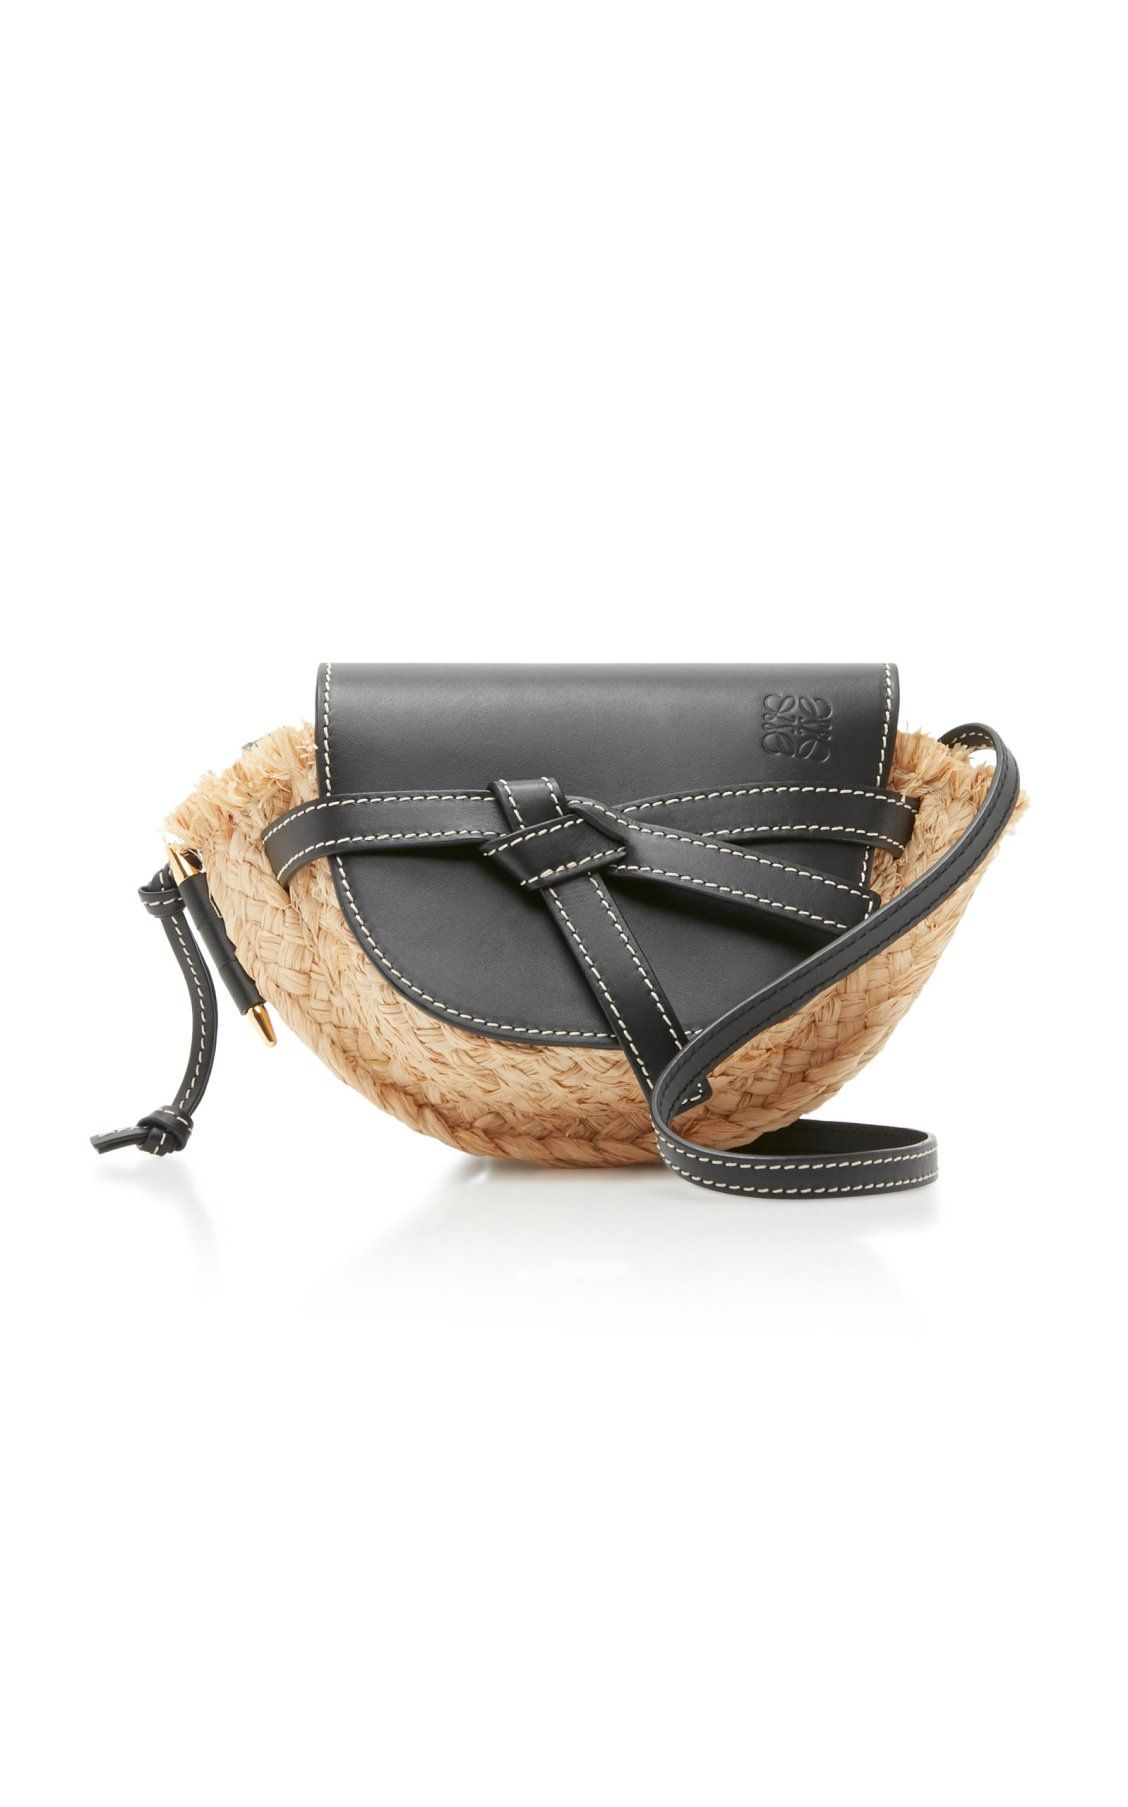 Gate Mini Raffia and Leather Bag by Loewe SS19  dbf3d5af1d901